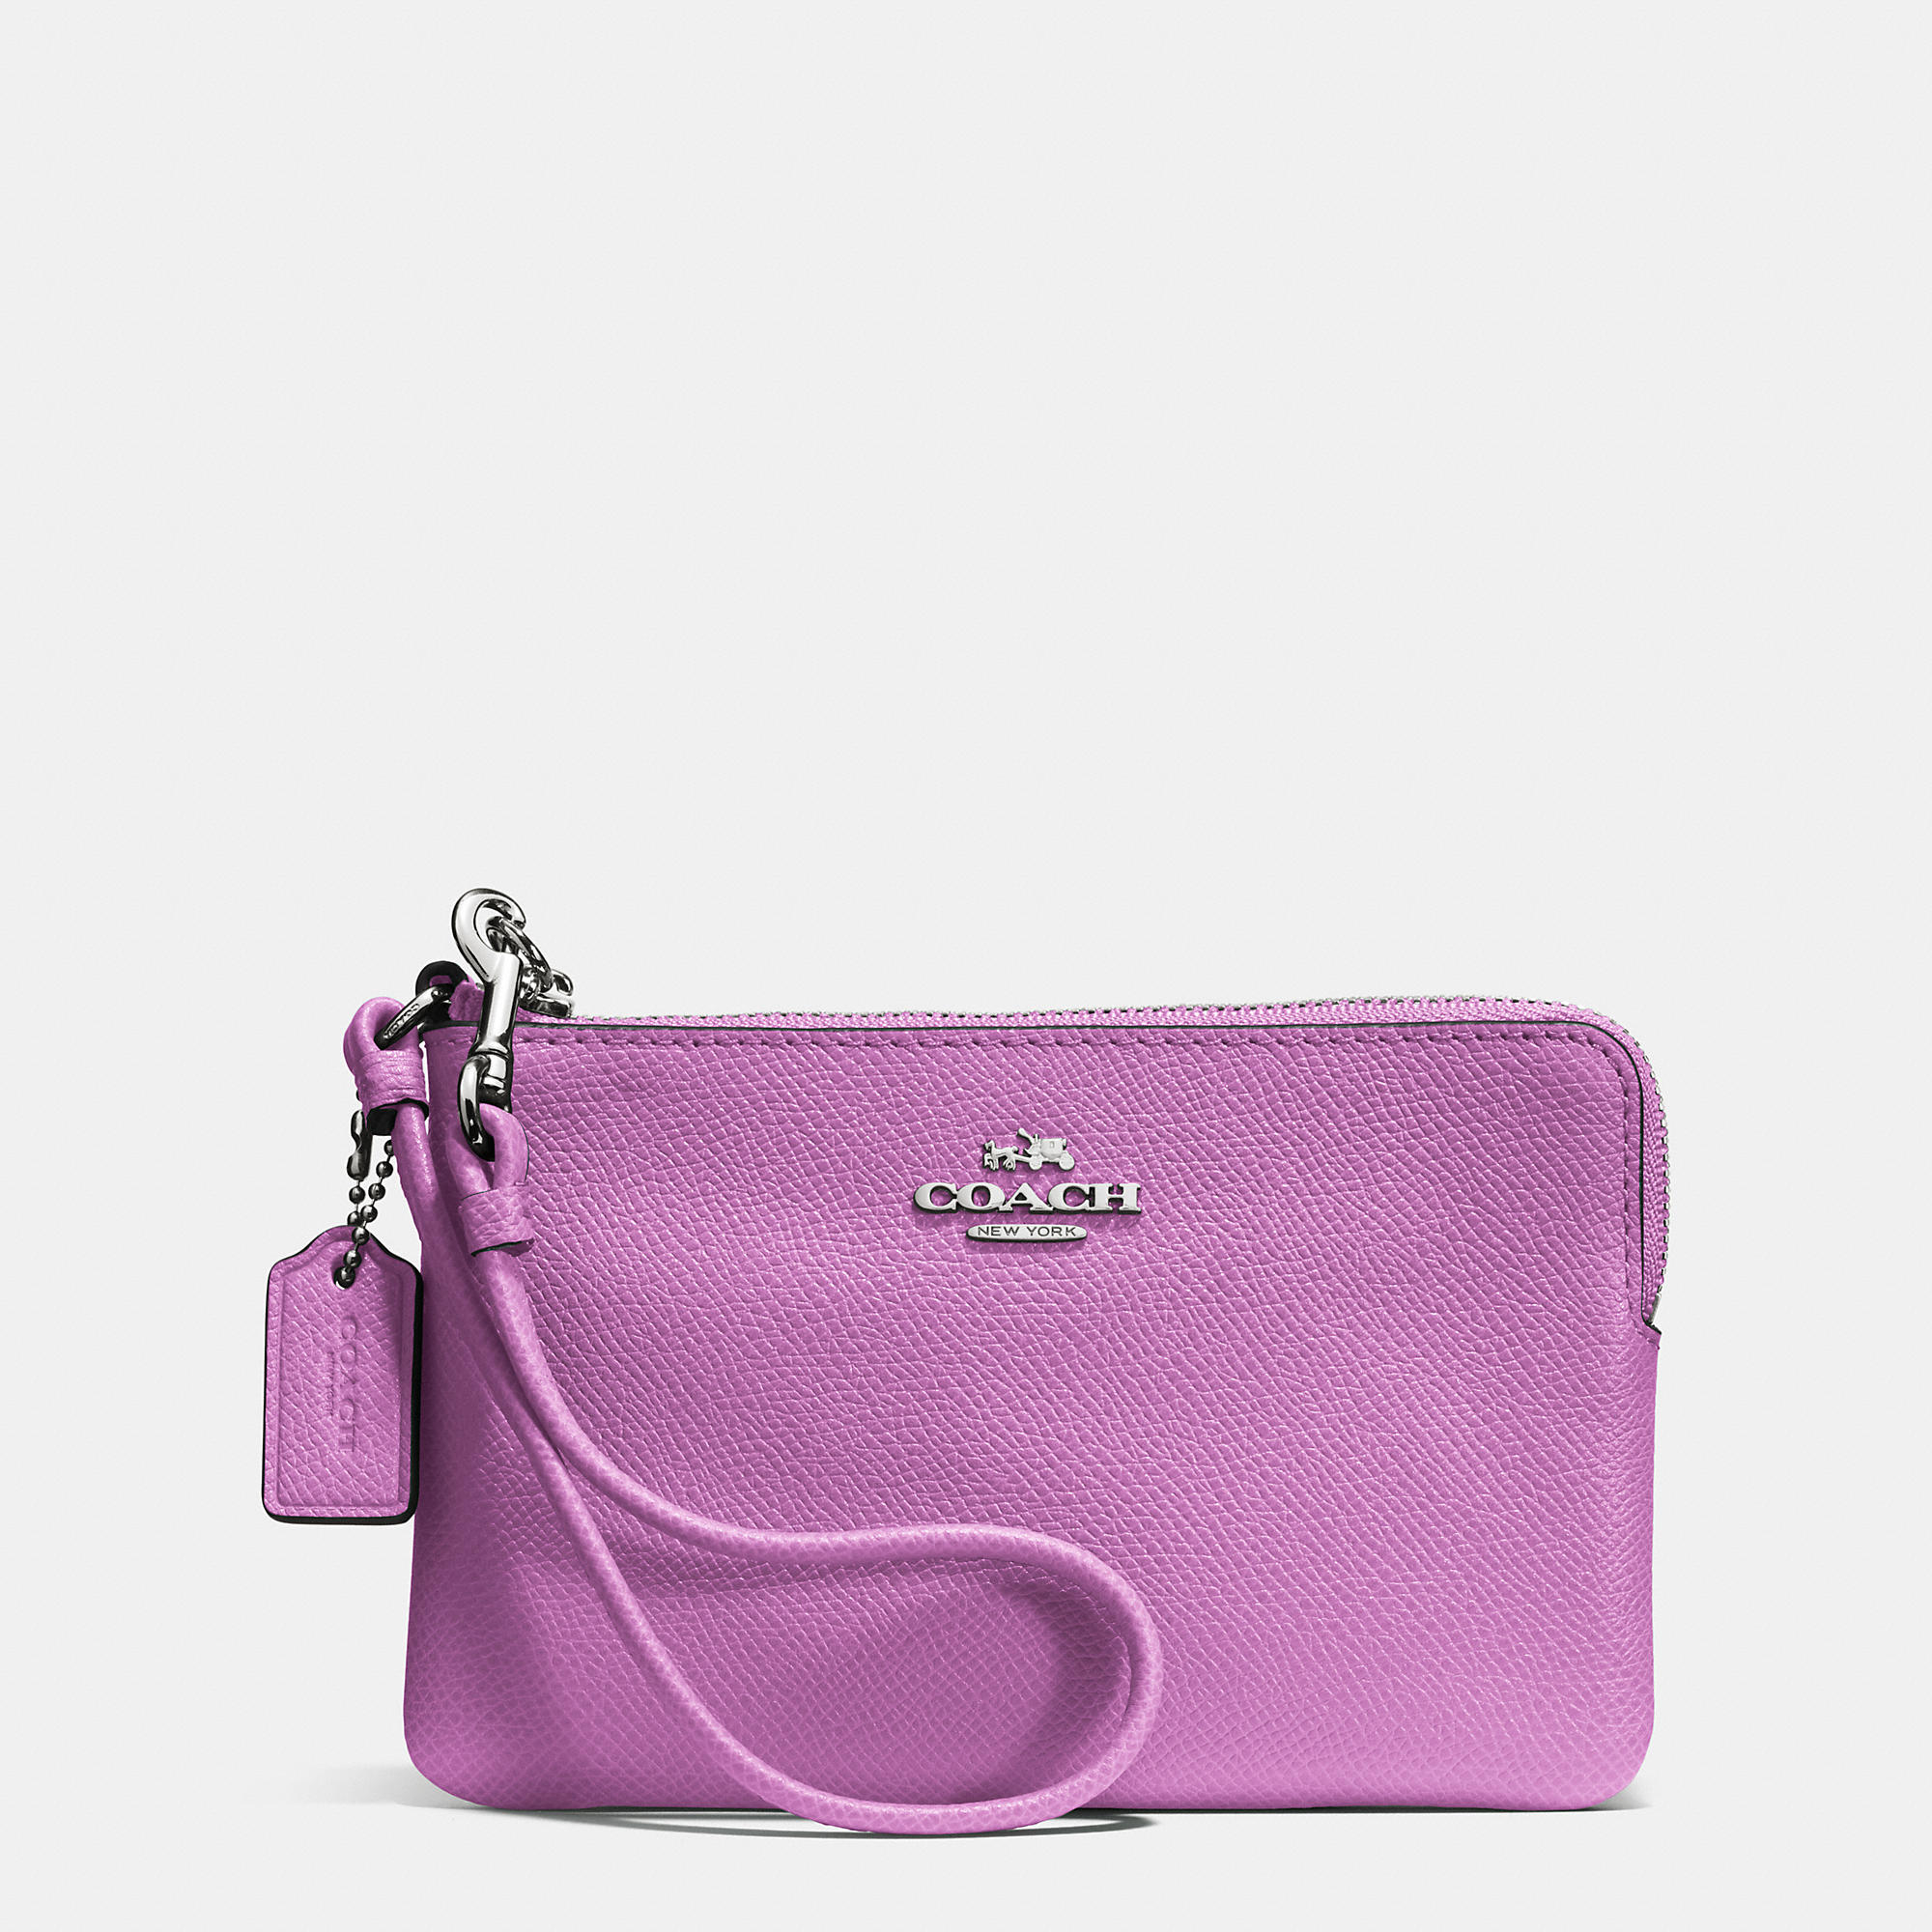 Case Design micheal kors phone cases : Coach Embossed Small L-zip Wristlet In Leather in Pink : Lyst